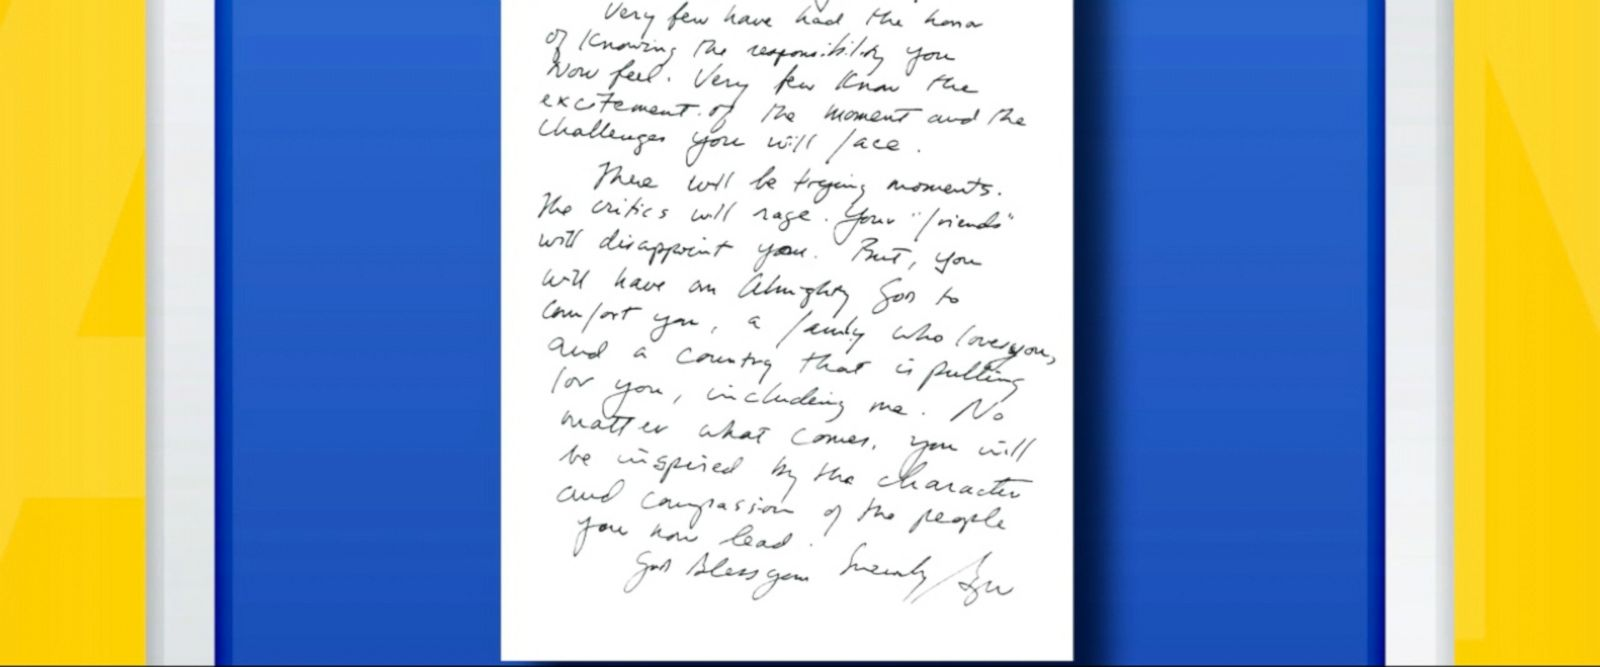 VIDEO: As Barack Obama prepares to hand the baton to Donald Trump, ABC News has obtained an exclusive look at the missive he received from his predecessor, as well as the note from Bill Clinton to George W. Bush in 2001.